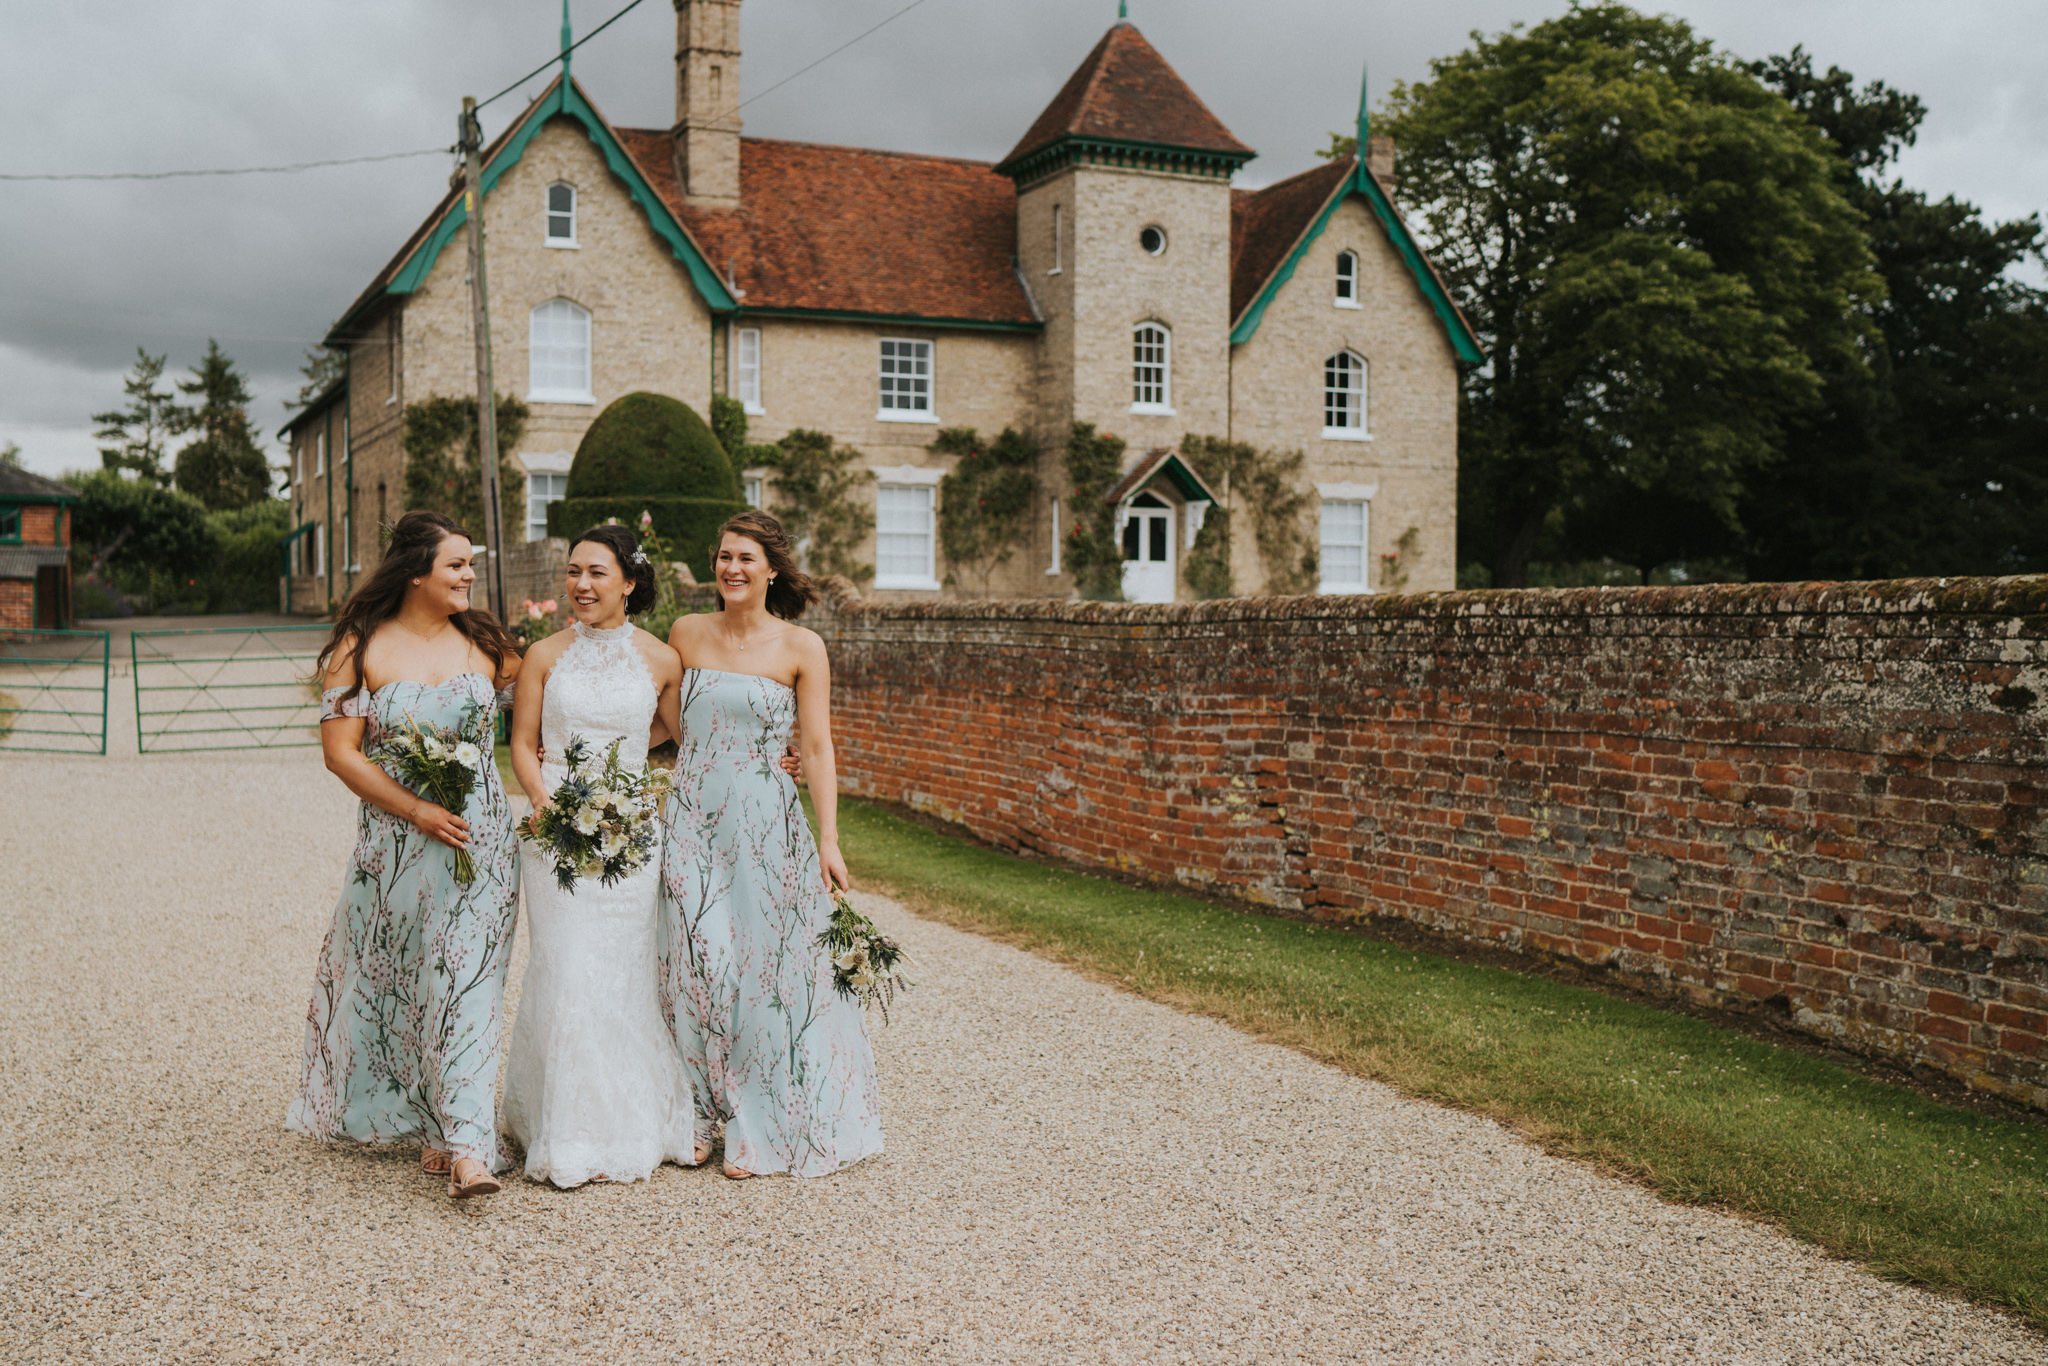 jane-patrick-smeetham-hall-barn-grace-elizabeth-colchester-essex-alternative-wedding-lifestyle-photographer-essex-suffolk-norfolk-devon (31 of 52).jpg